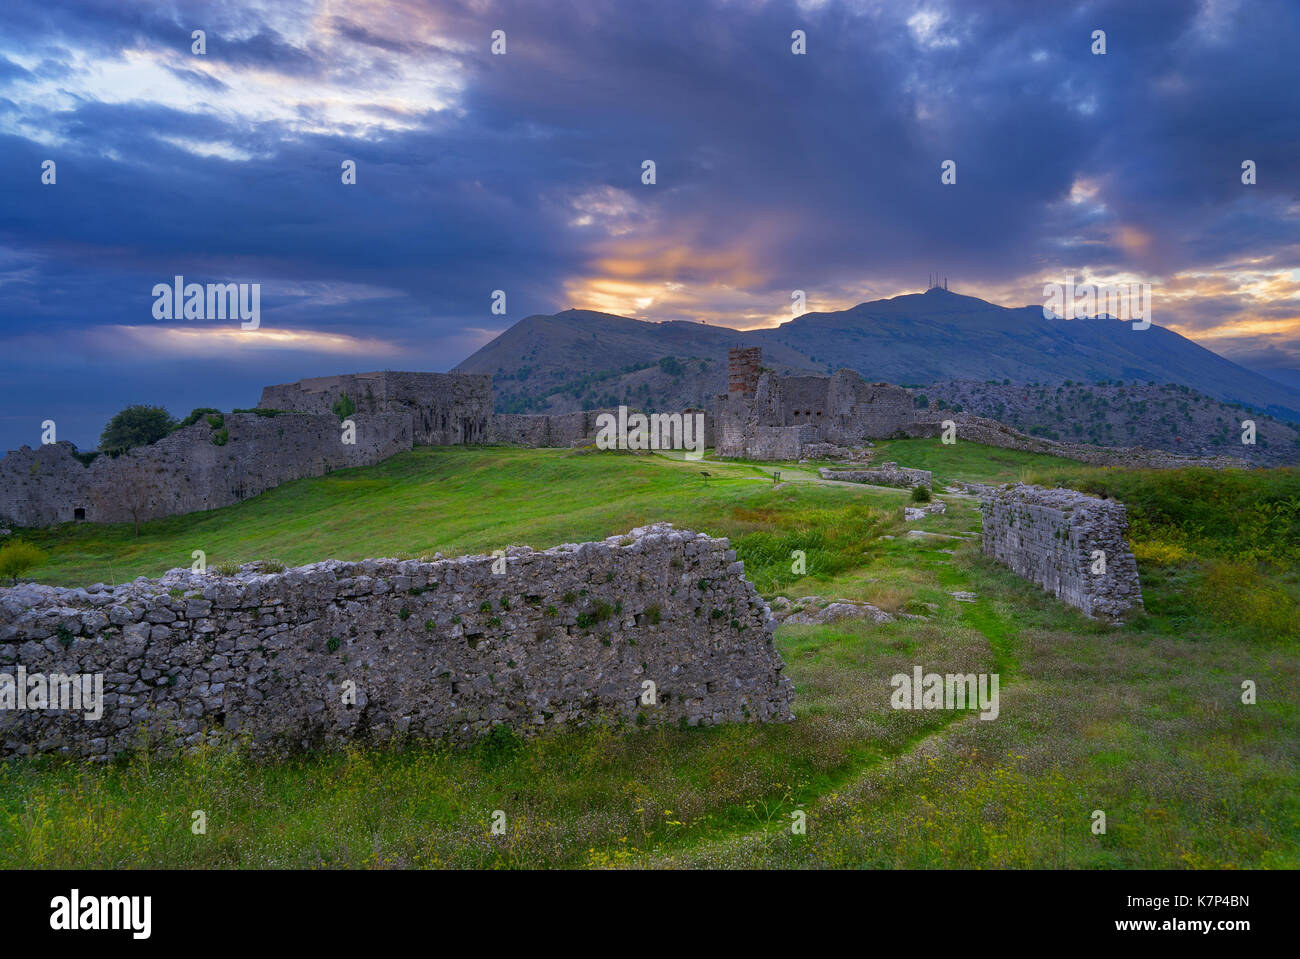 Albania is a mountainous country in the Balkans - Stock Image